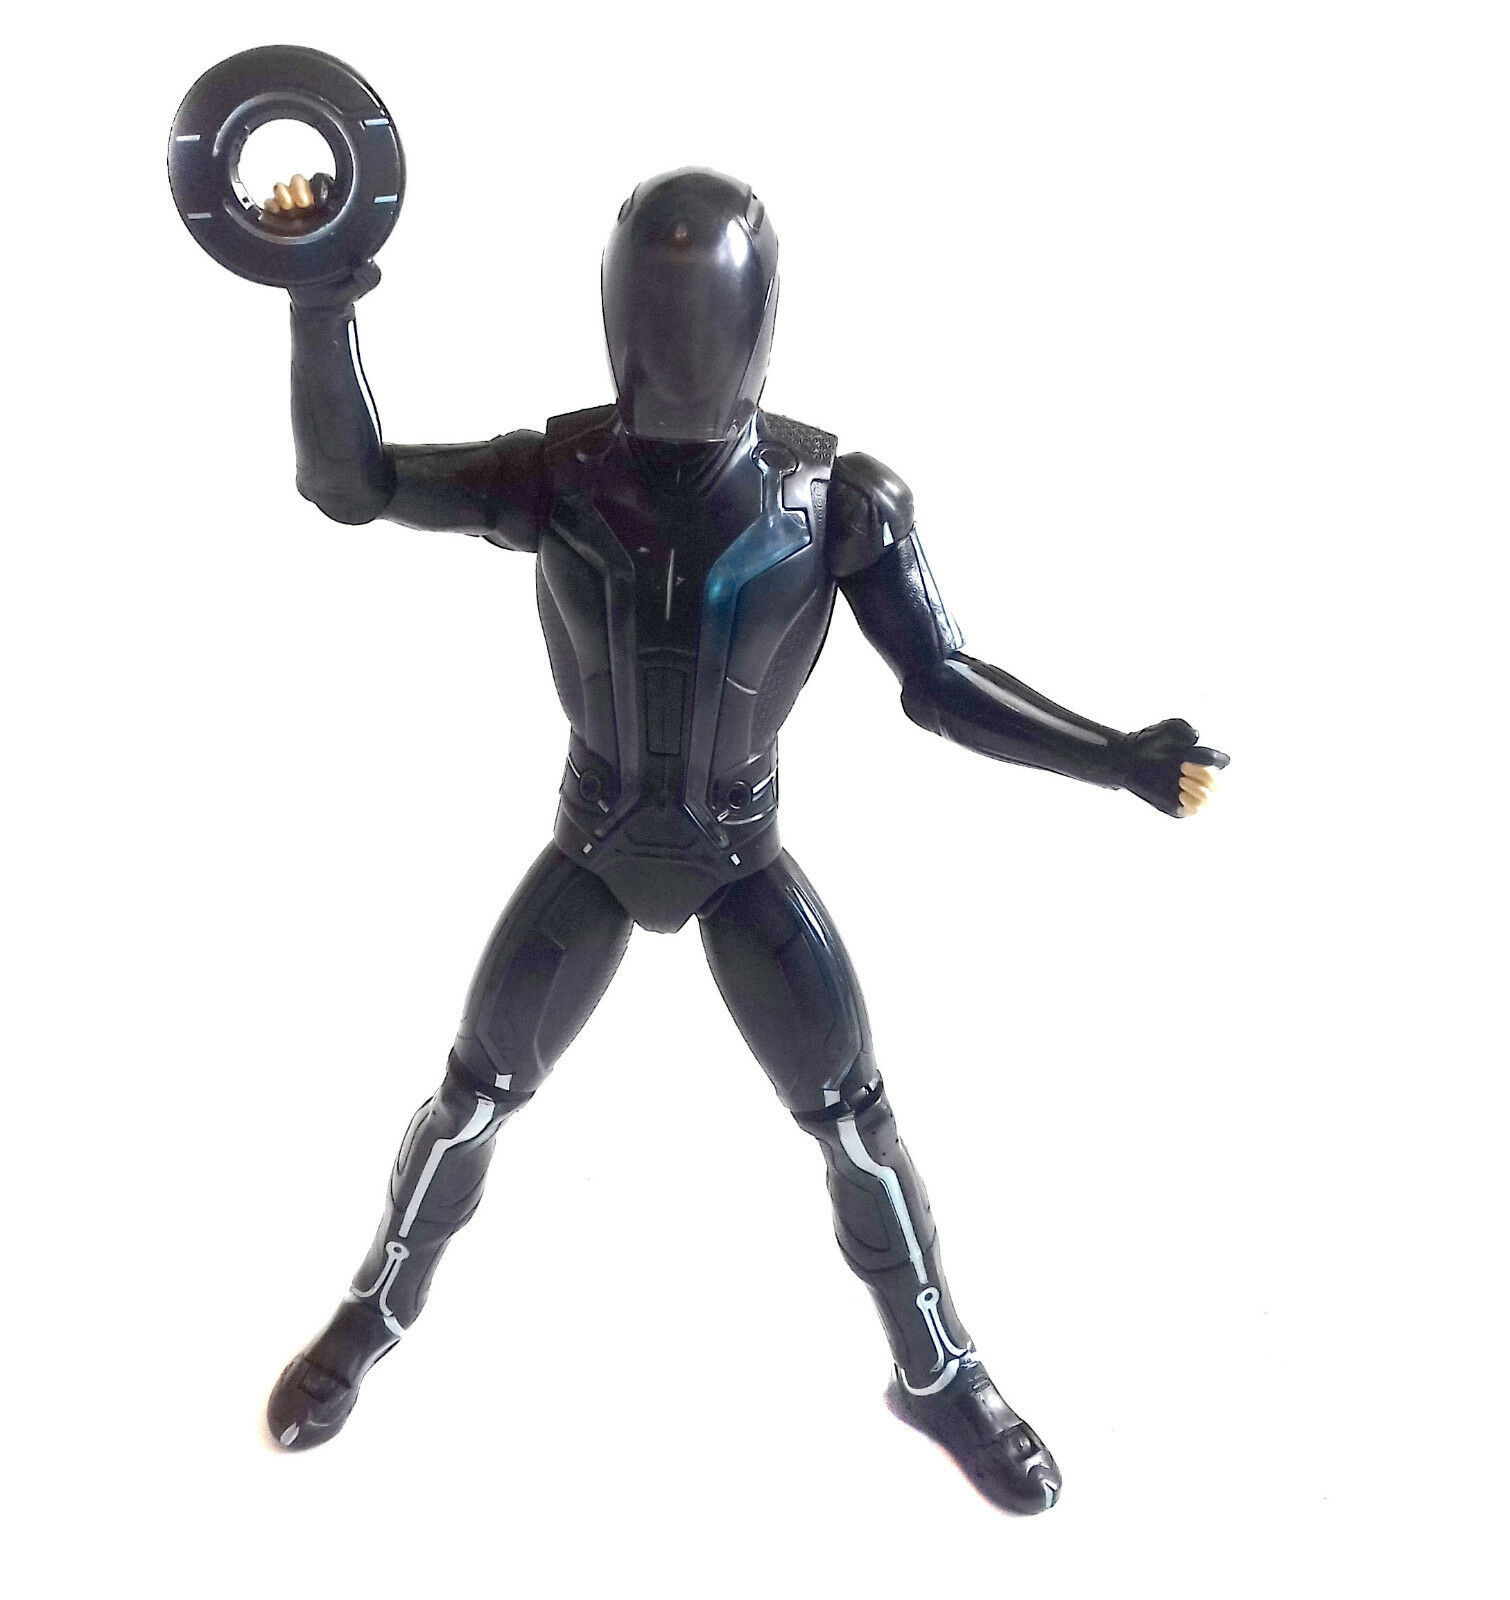 TRON Legacy Movie 12 12 12  action figure toy, with light up suit, VERY COOL  3e2807